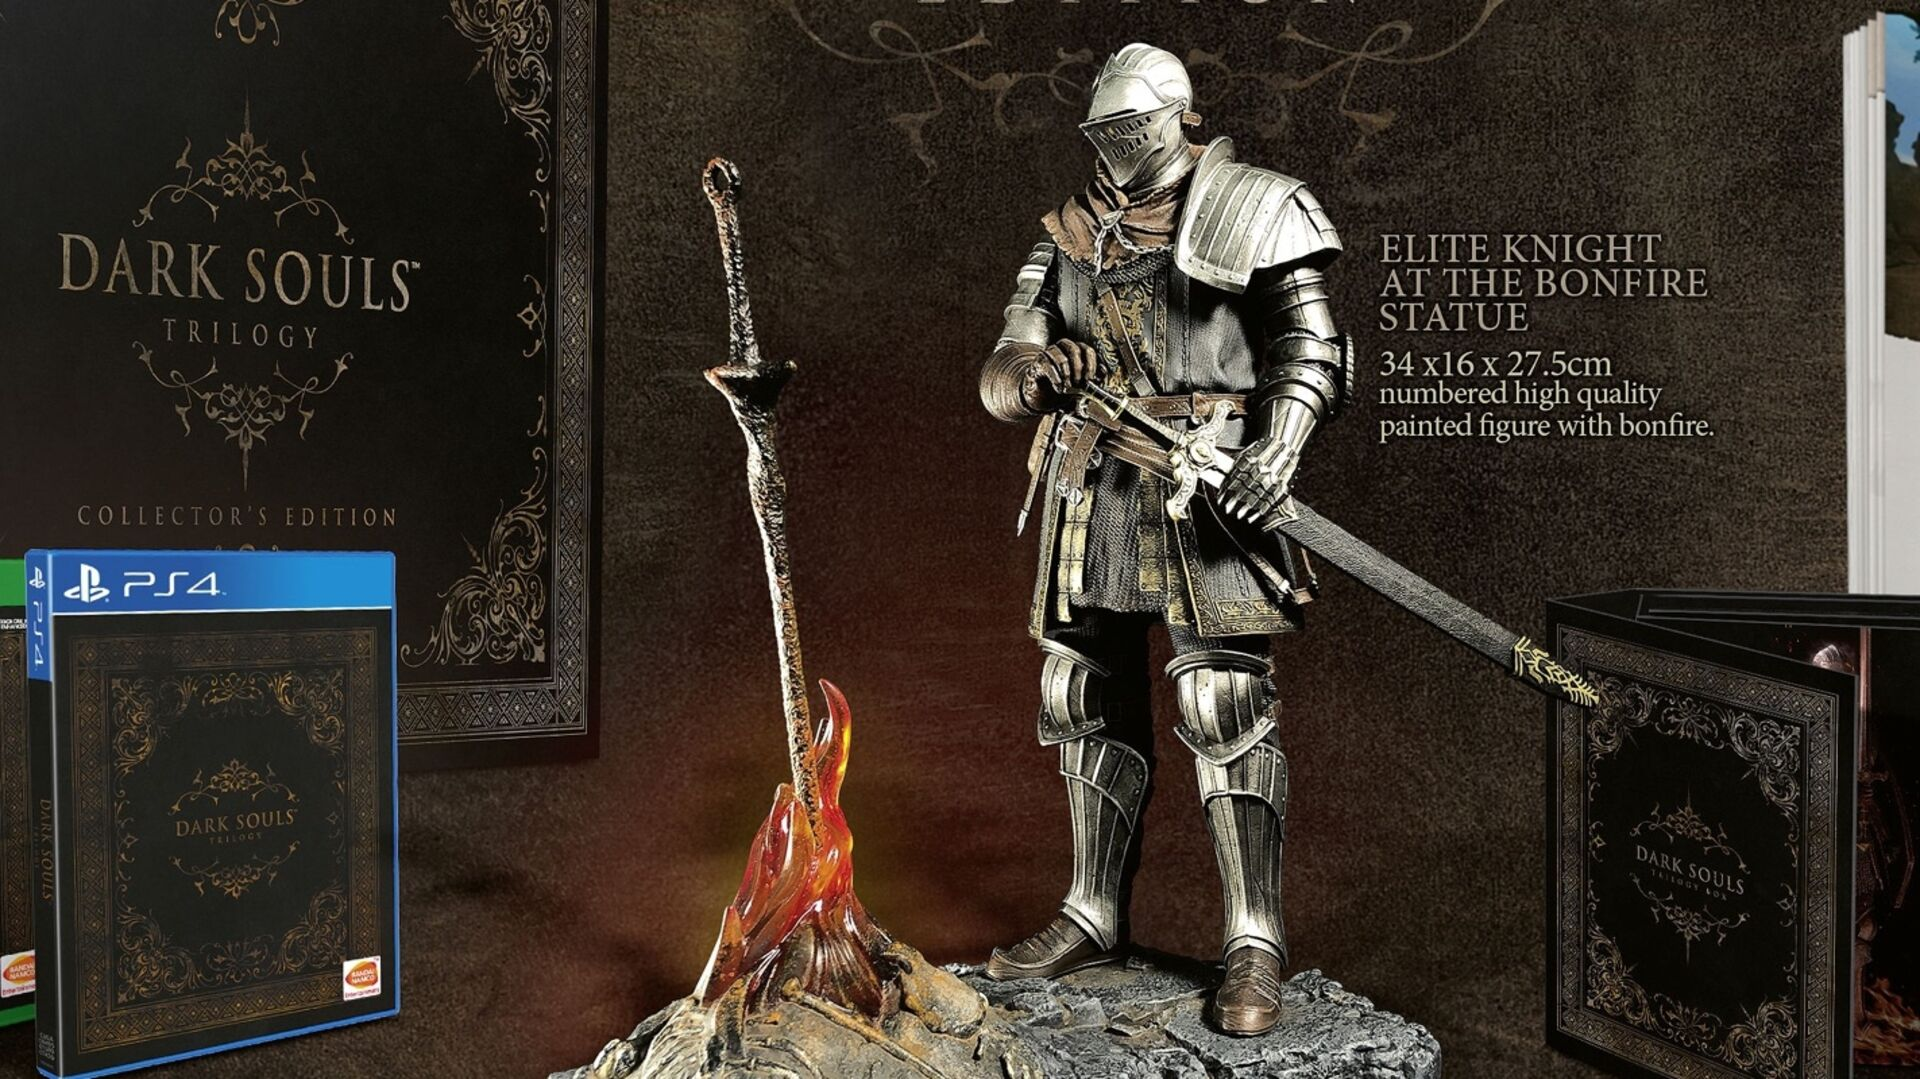 Europe's Dark Souls Trilogy Collector's Edition is pretty swish